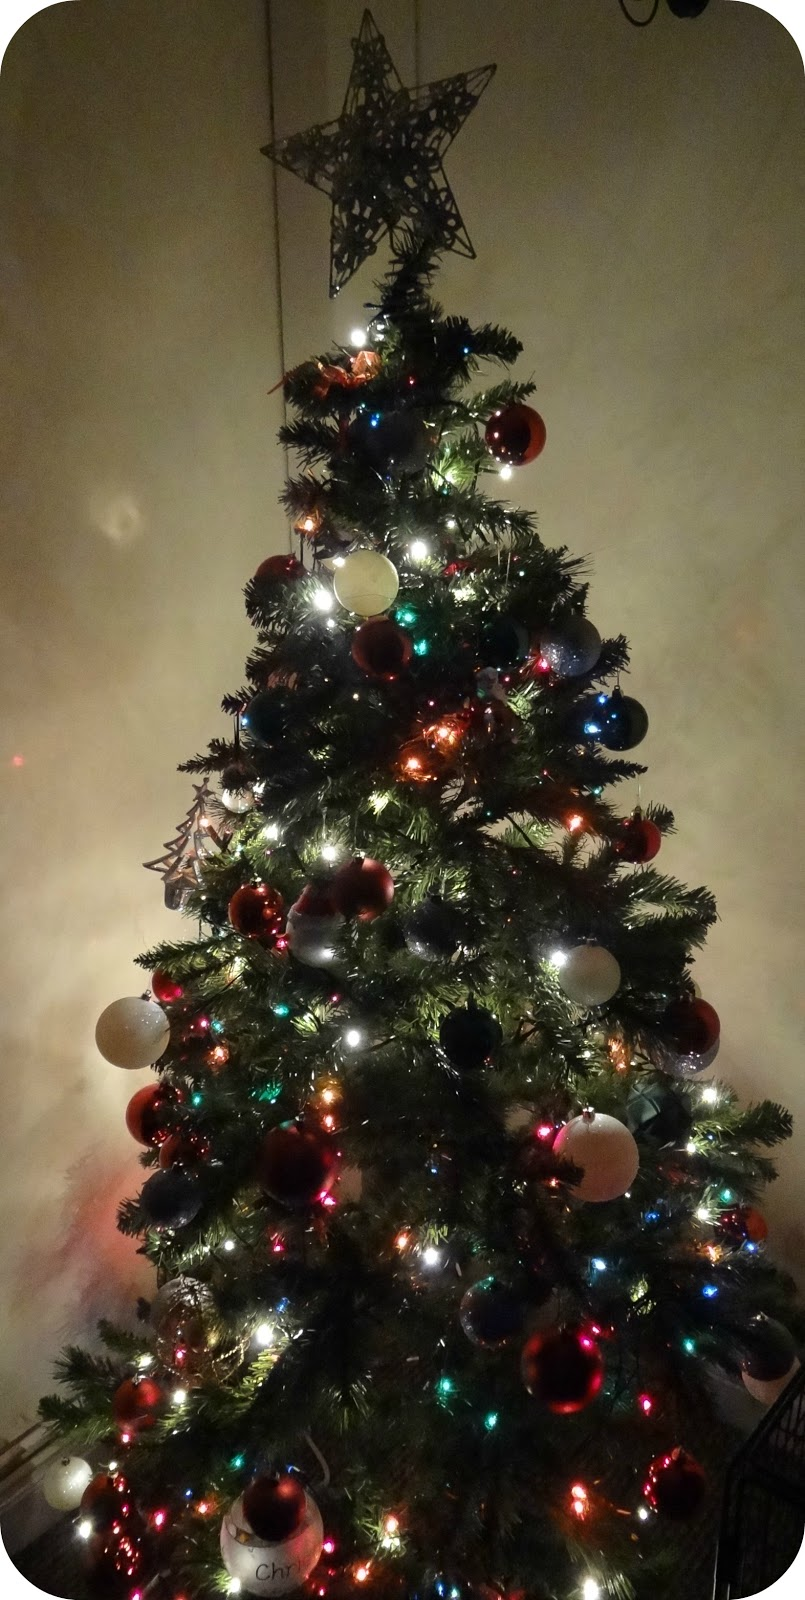 Life Unexpected: Our First Family Christmas Tree